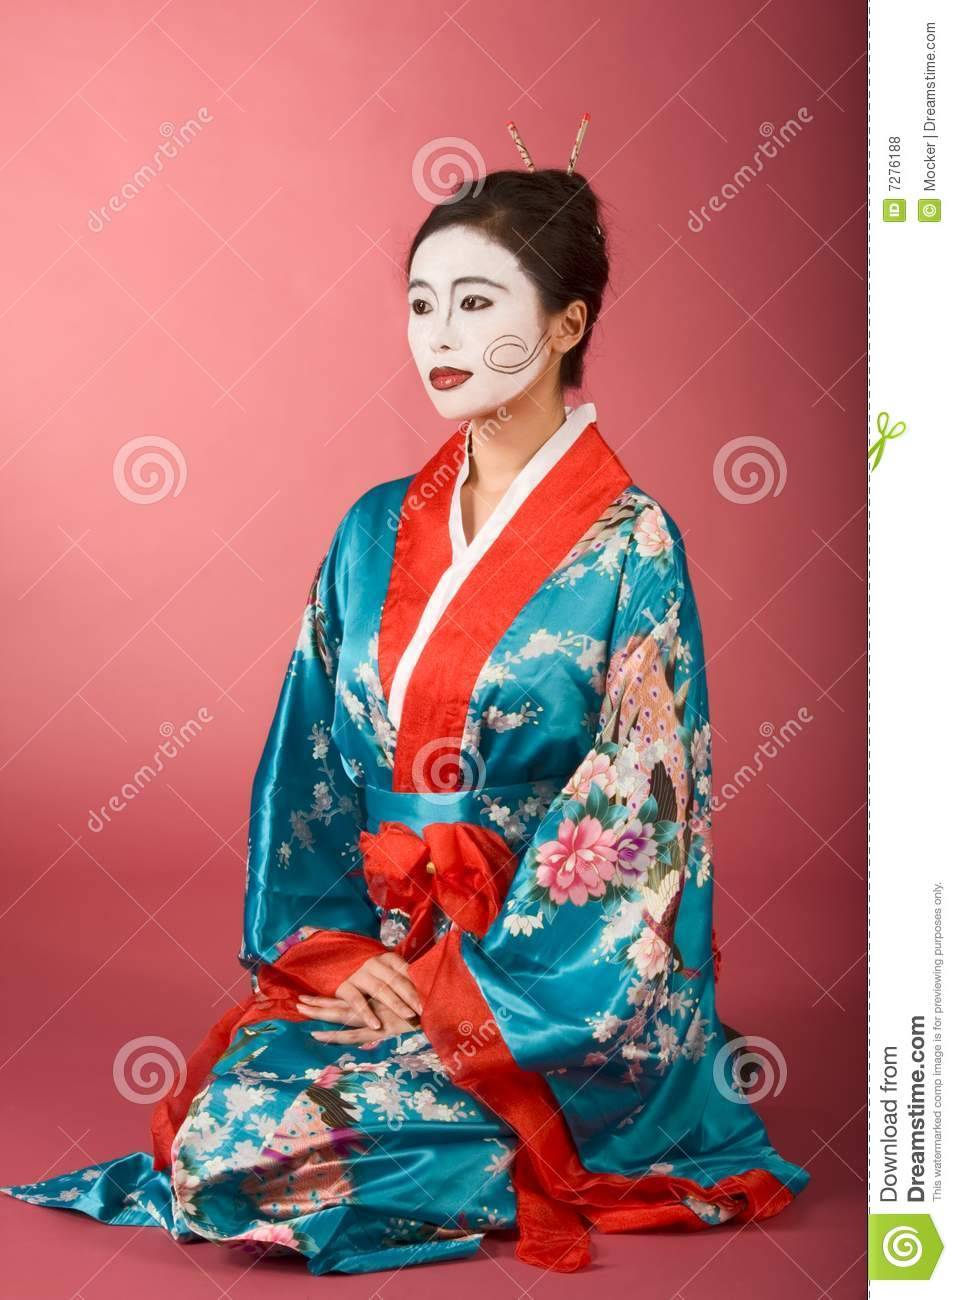 femme japonais de geisha dans le kimono et le facepaint photos libres de droits image 7276188. Black Bedroom Furniture Sets. Home Design Ideas